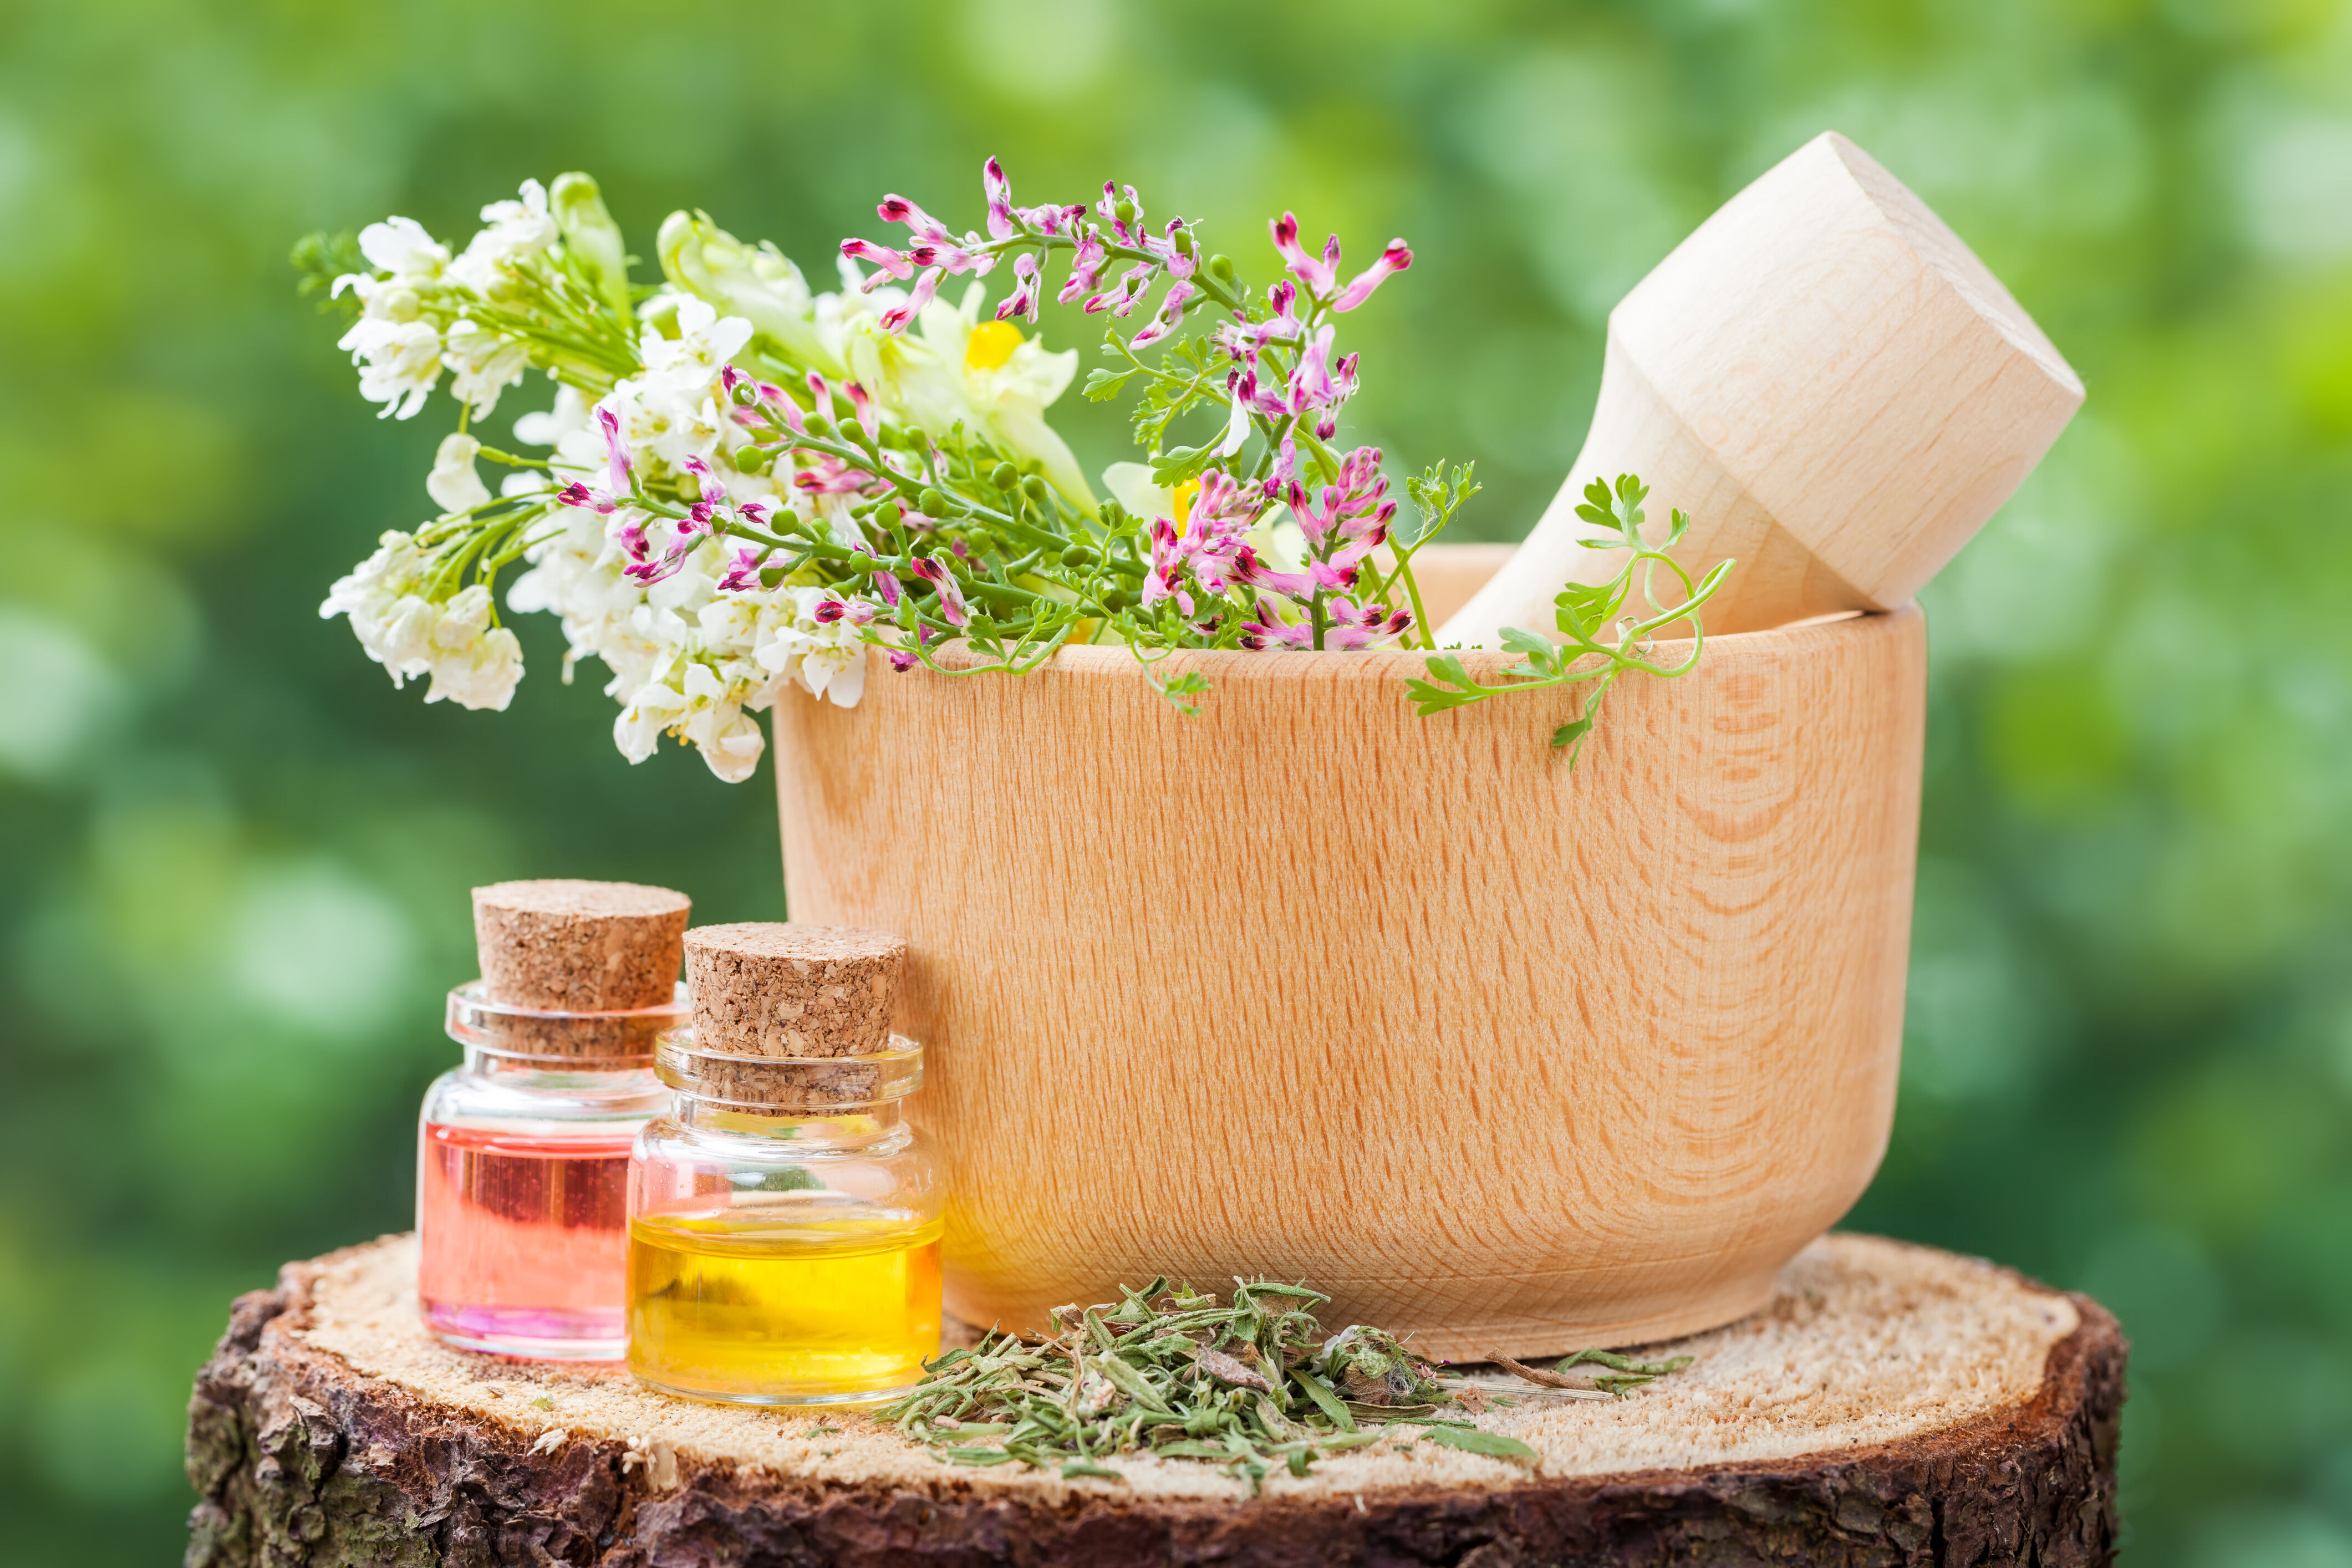 Herbs and oils